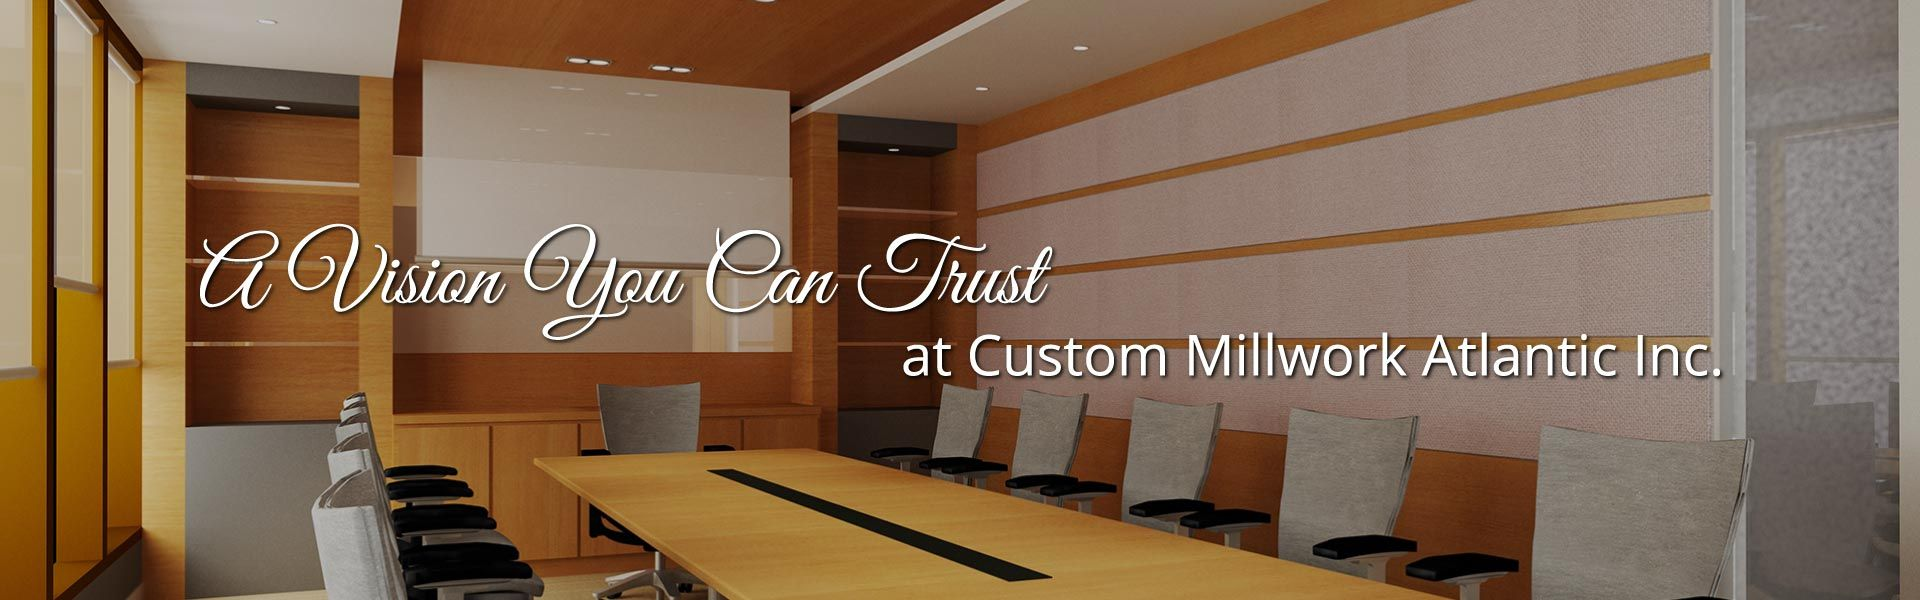 A Vision You Can Trust at Custom Millwork Atlantic Inc. | meeting room